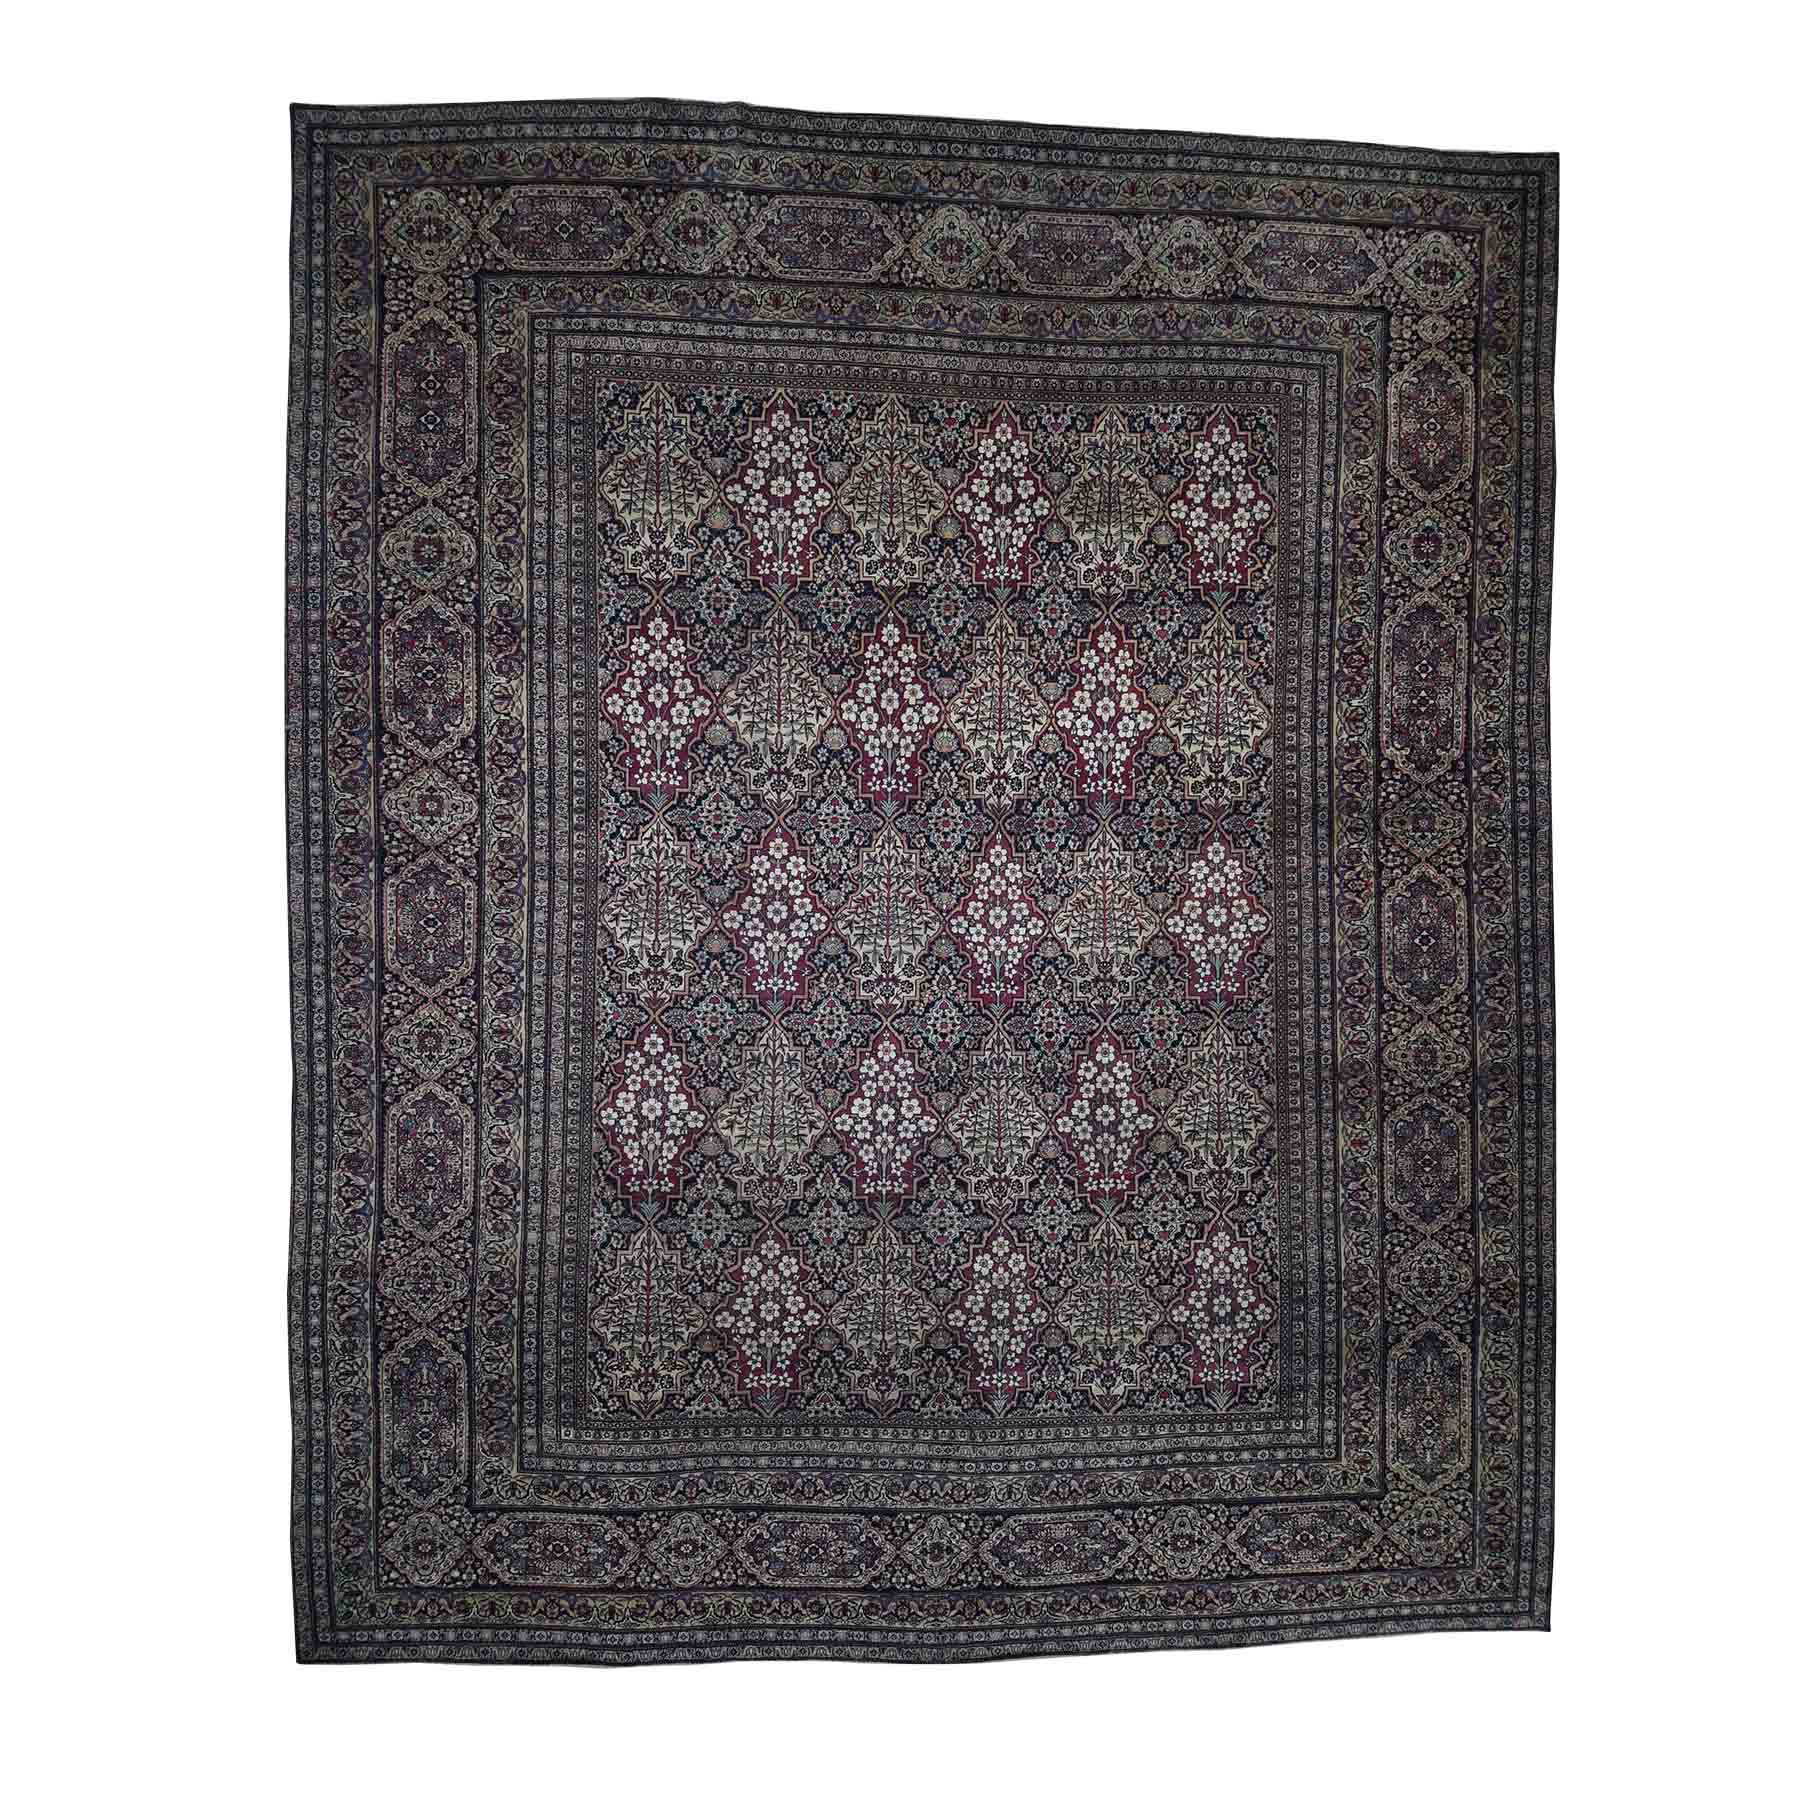 Antique Collection Hand Knotted Multicolored Rug No: 0182358